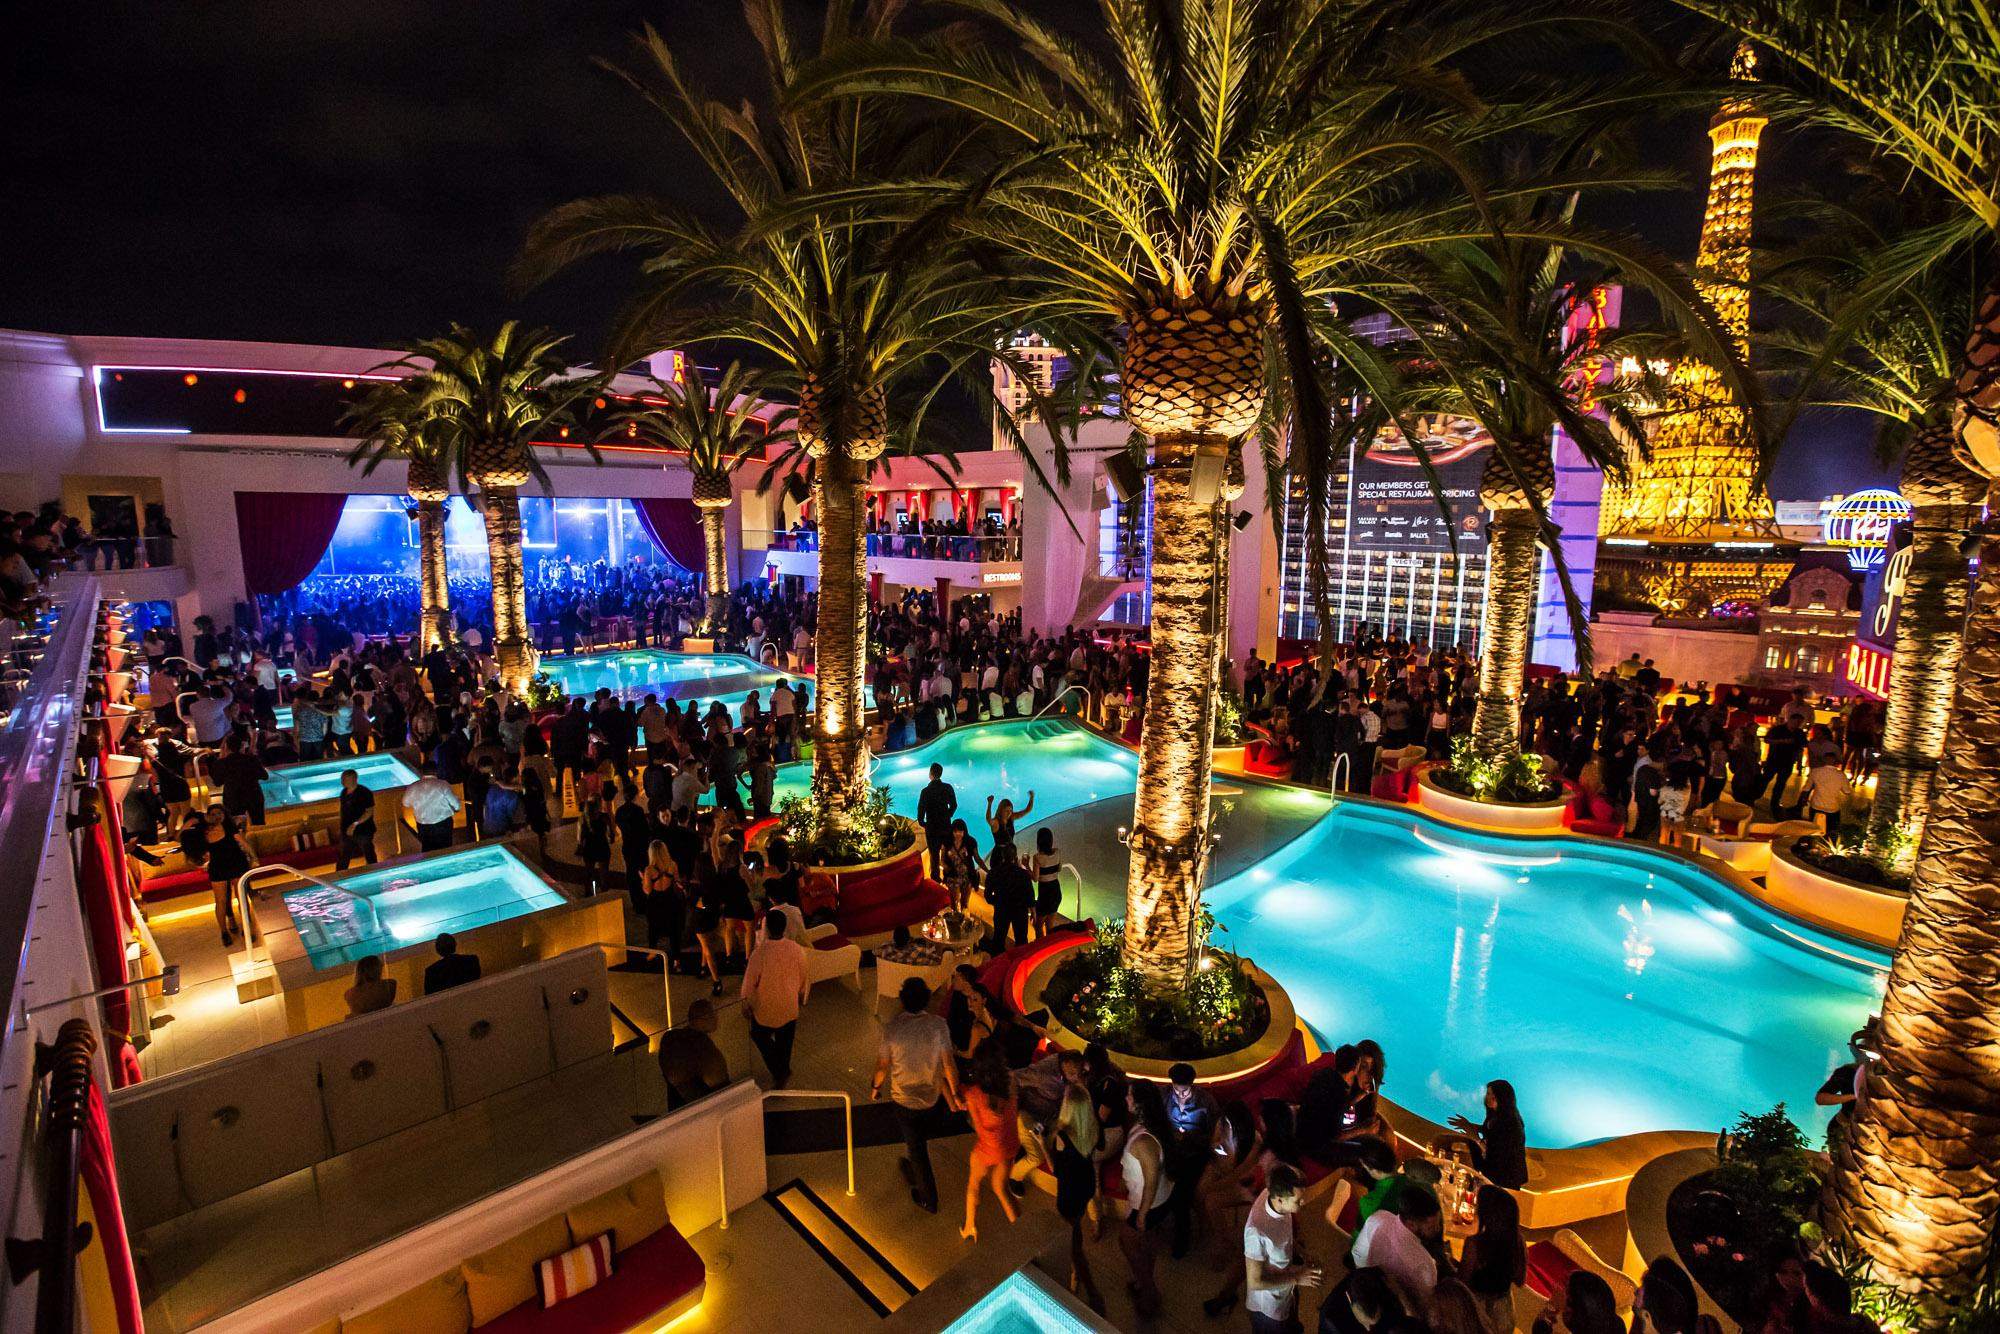 Drais Las Vegas Bottle Service Prices